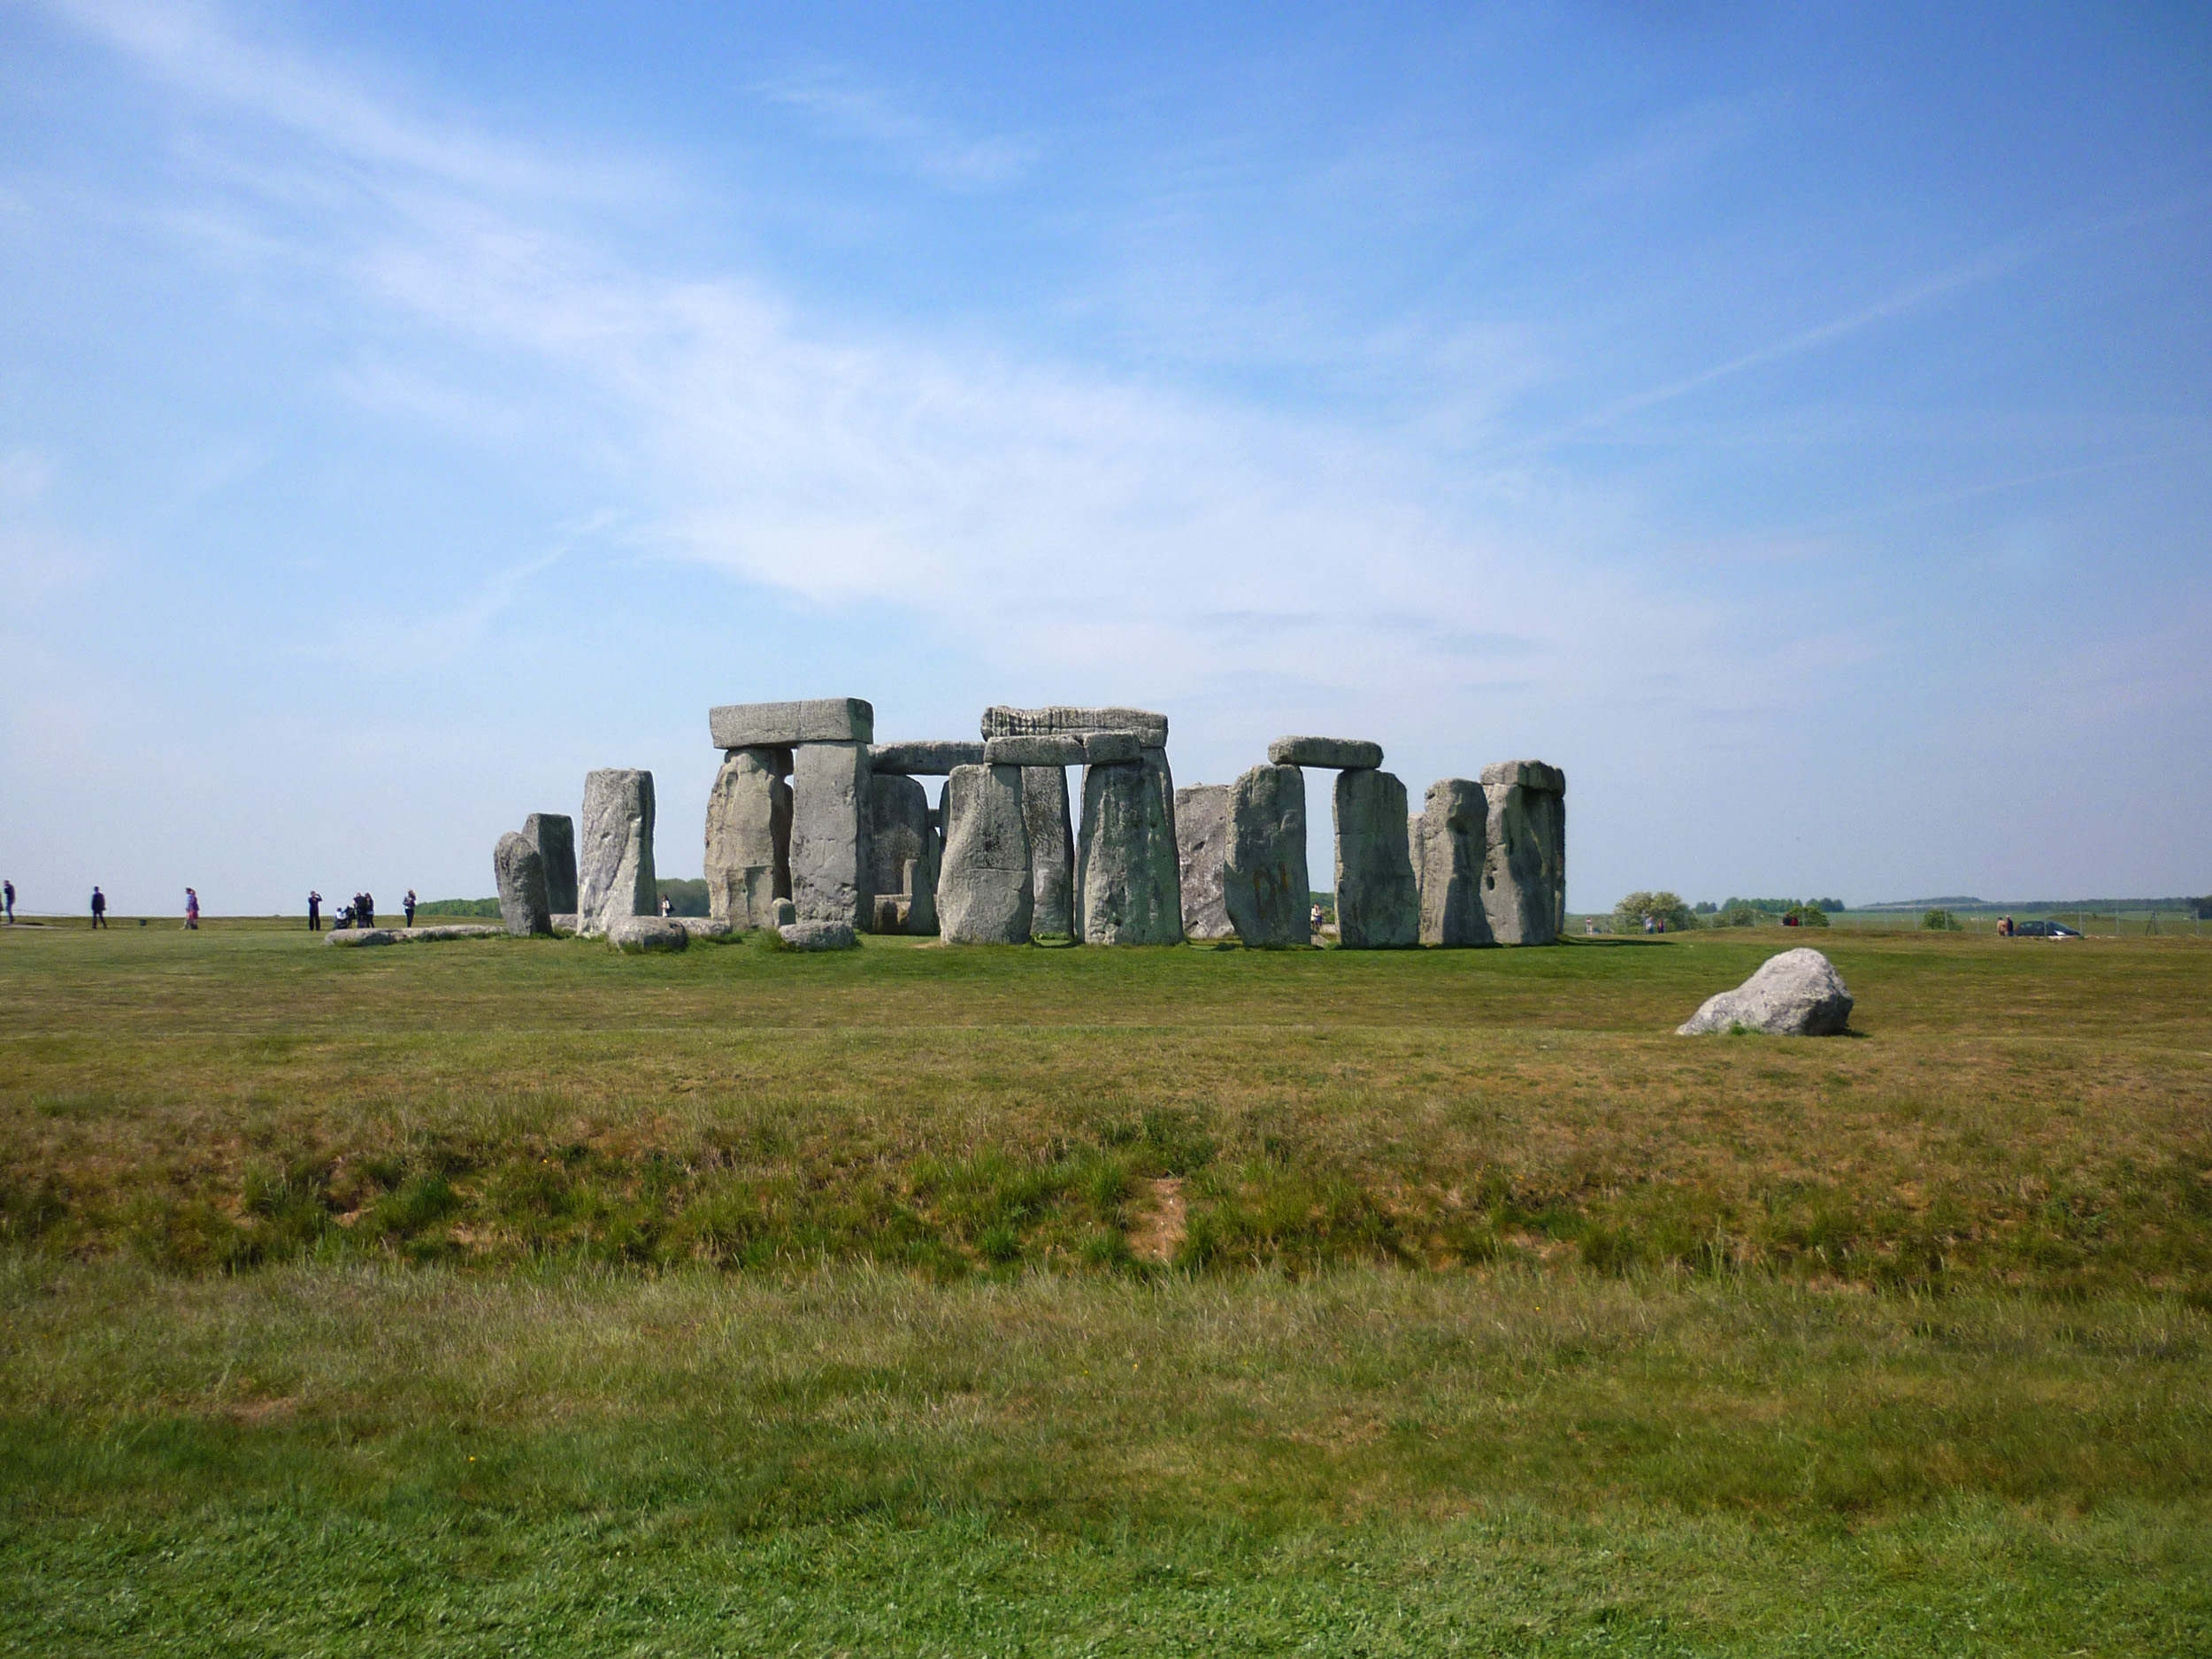 UNESCO World Heritage Site stone circle